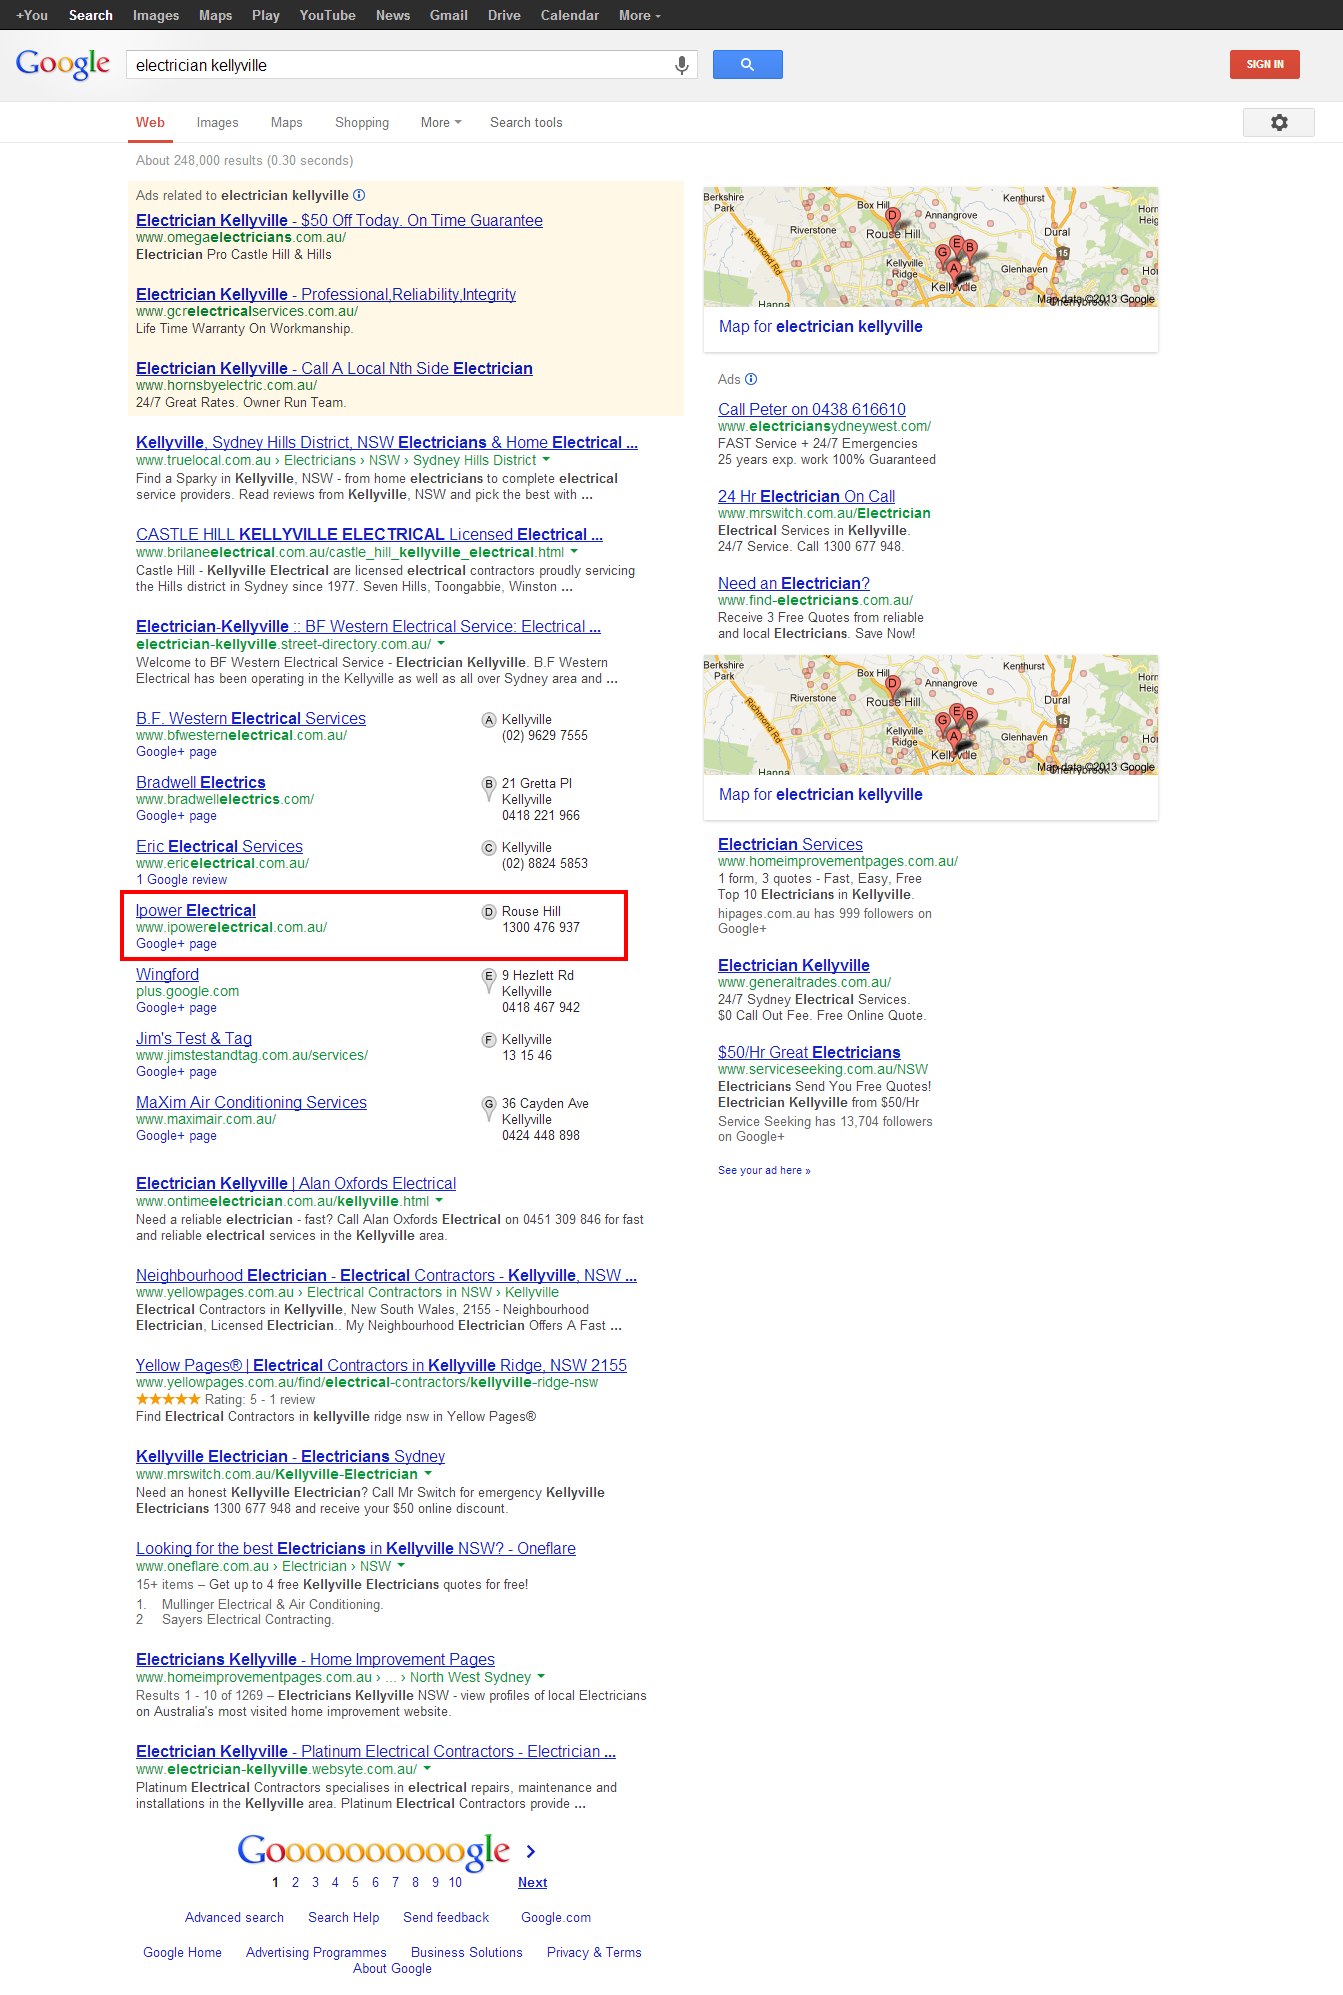 iPower Electrical Google Page Result